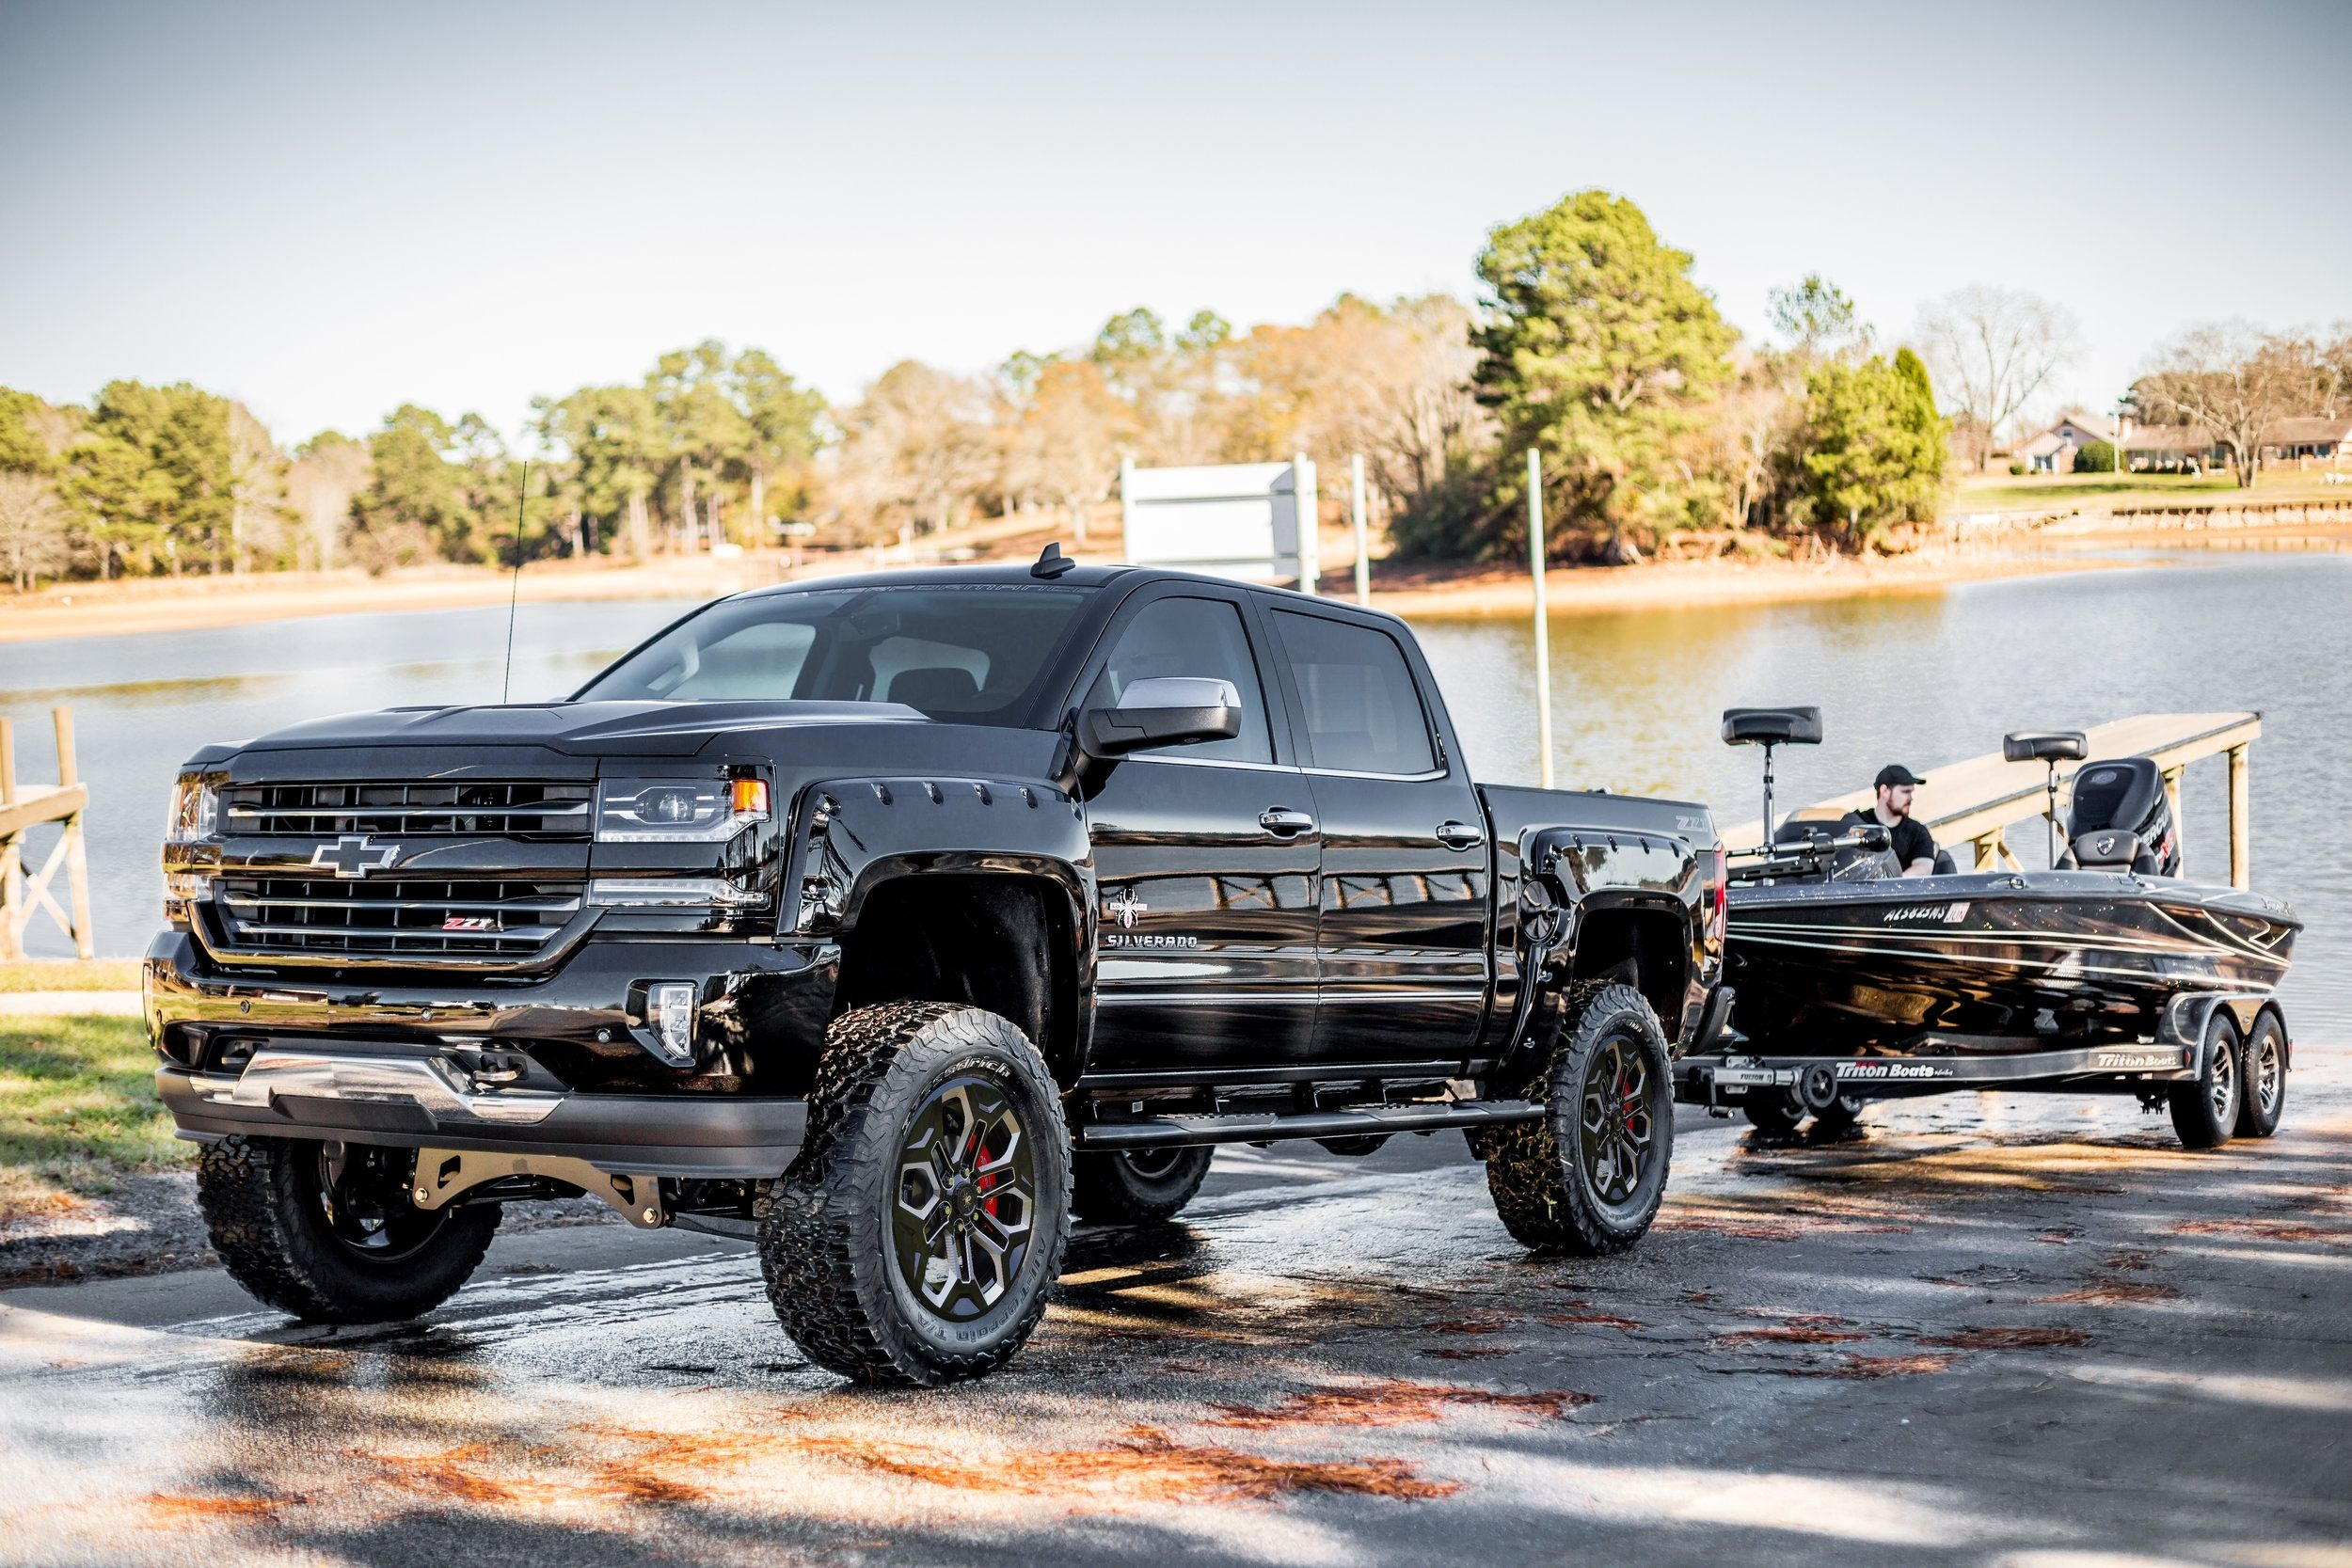 Sca Chevy Black Widow Jacked Up Trucks Gmc Trucks Lifted Trucks